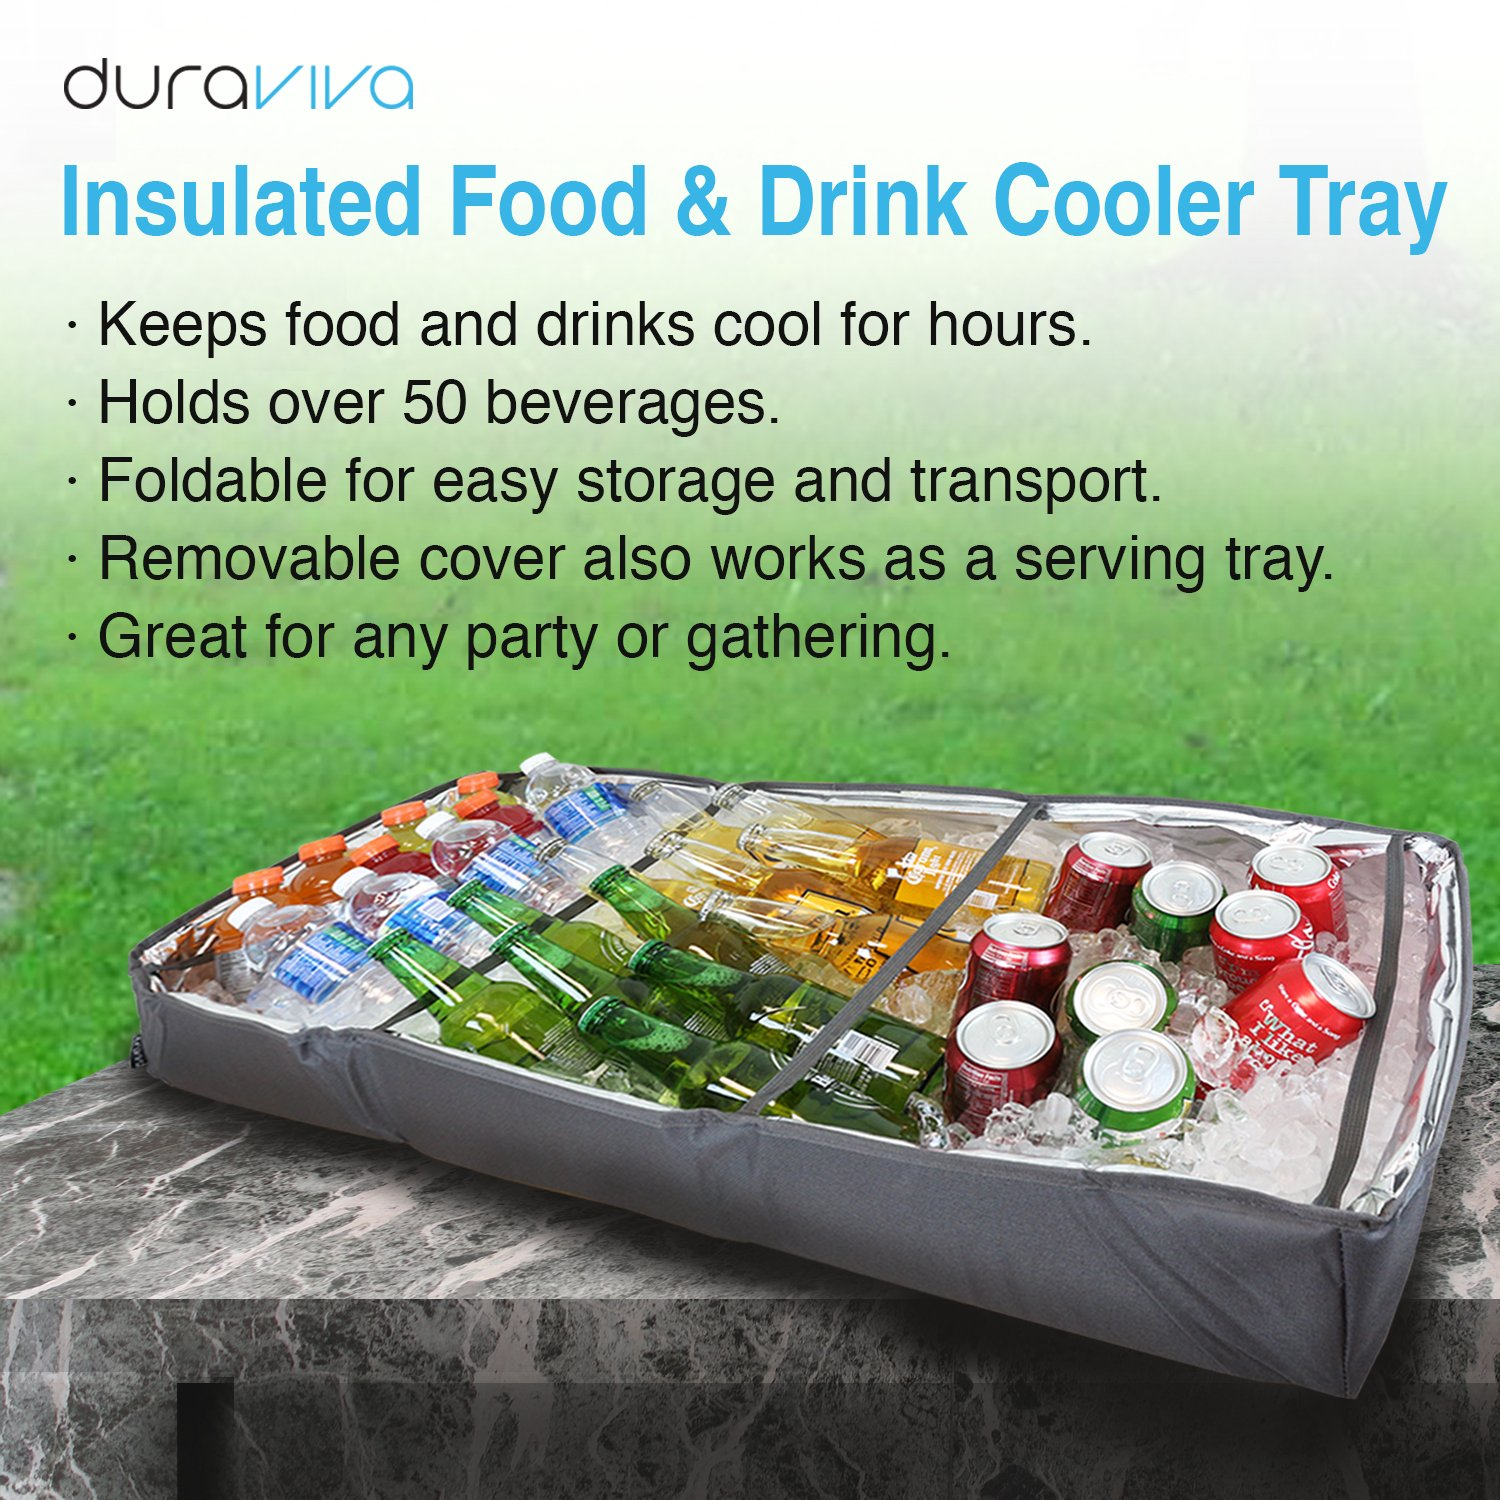 Duraviva Insulated Food & Drink Party Serving Tray Portable Foldable Cooler for Beverages, Buffet, Picnic, BBQ, Salad Seafood Bar by Duraviva (Image #8)